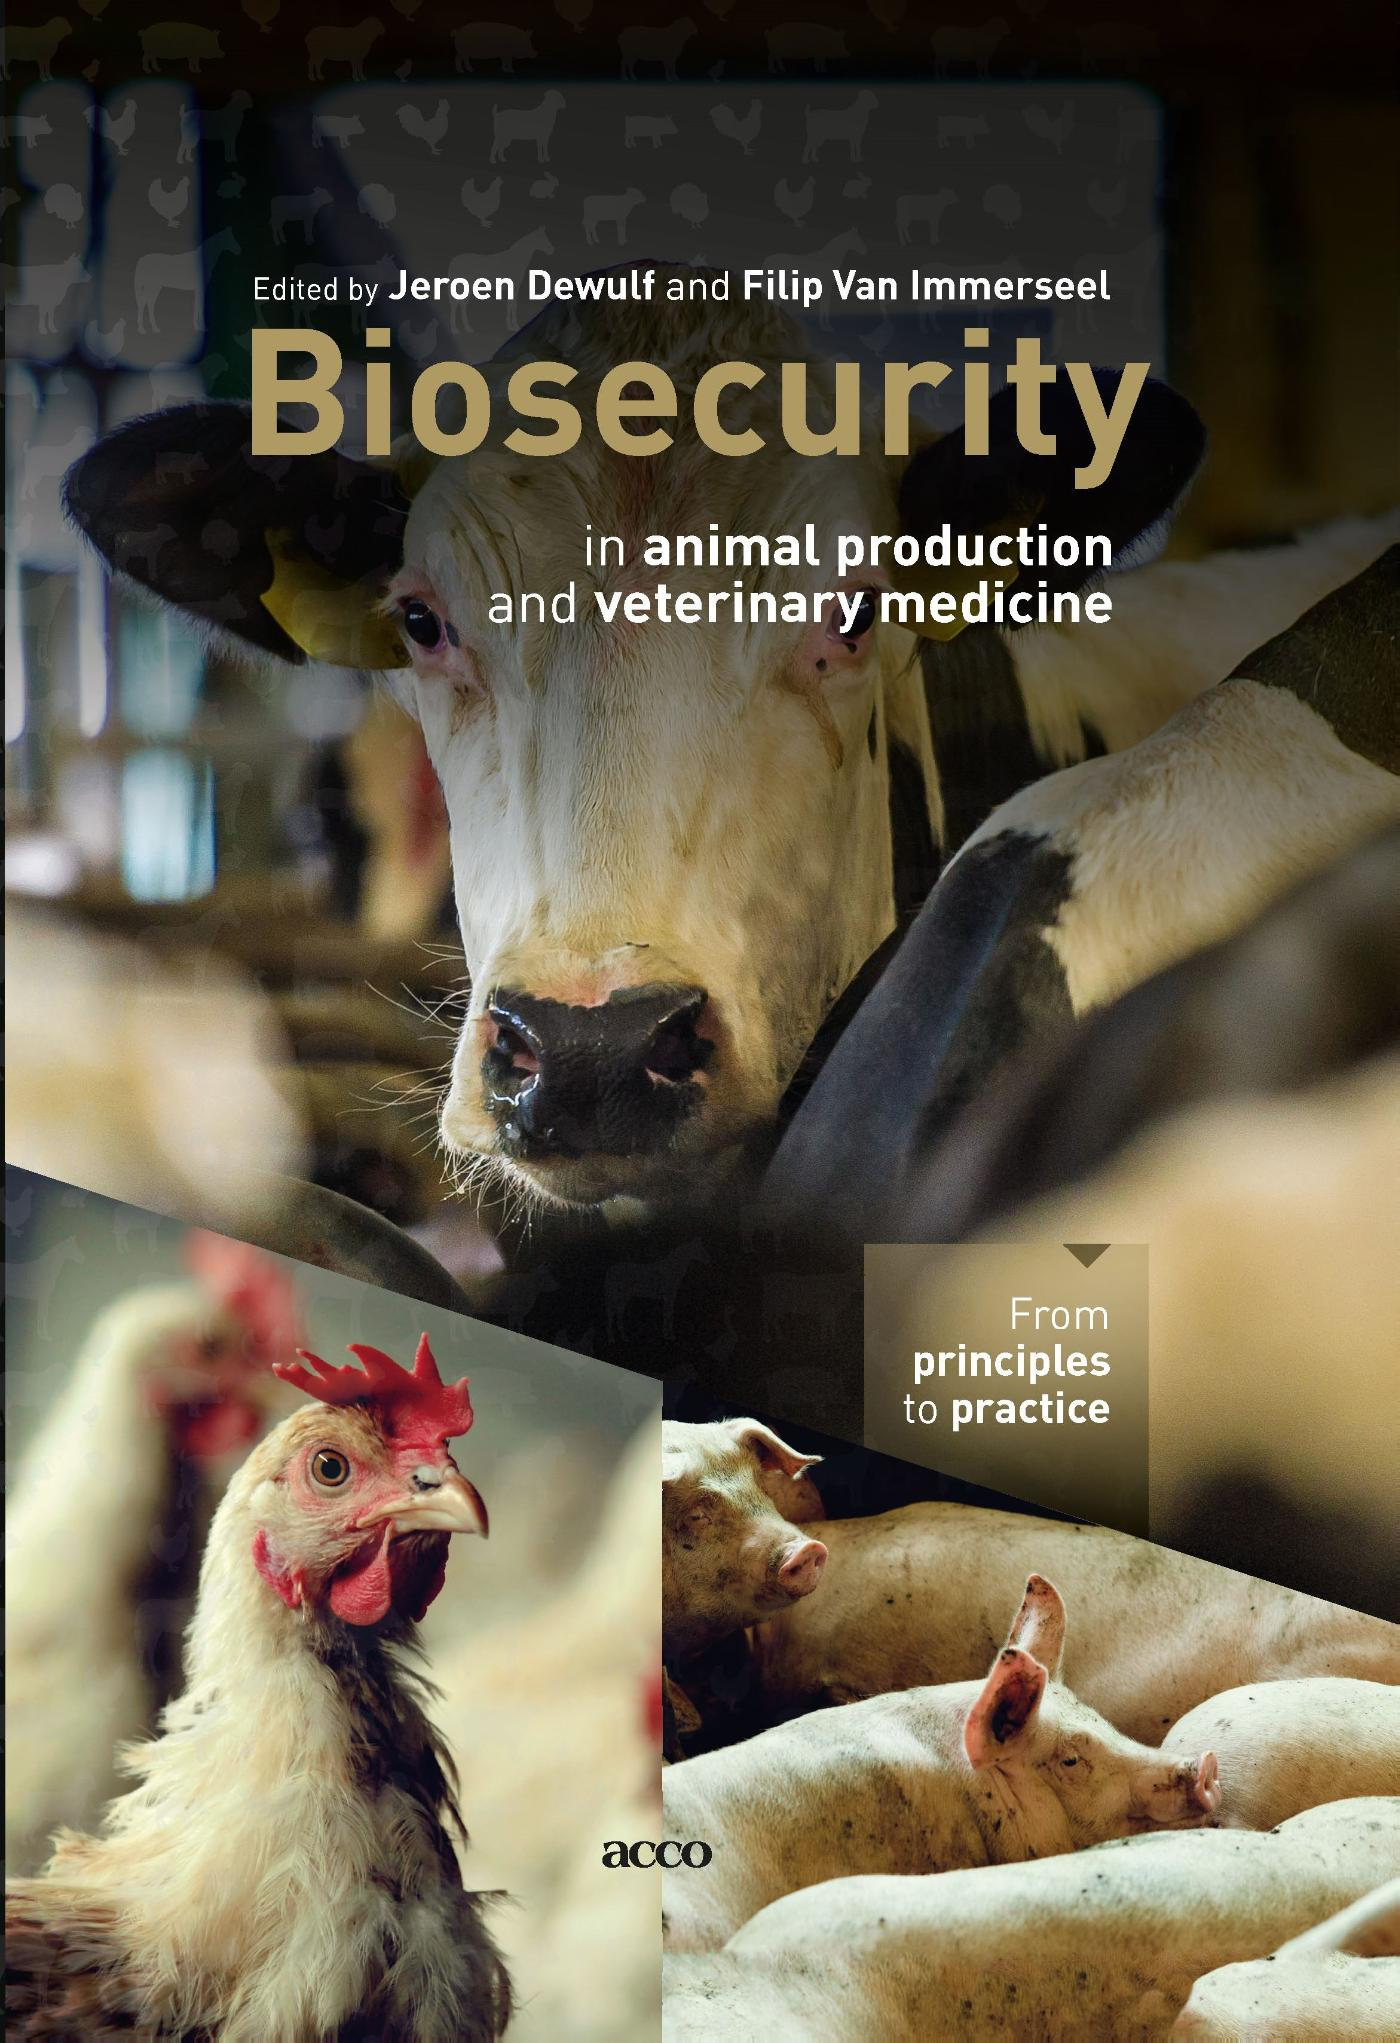 Biosecurity in animal production and veterinary medicine